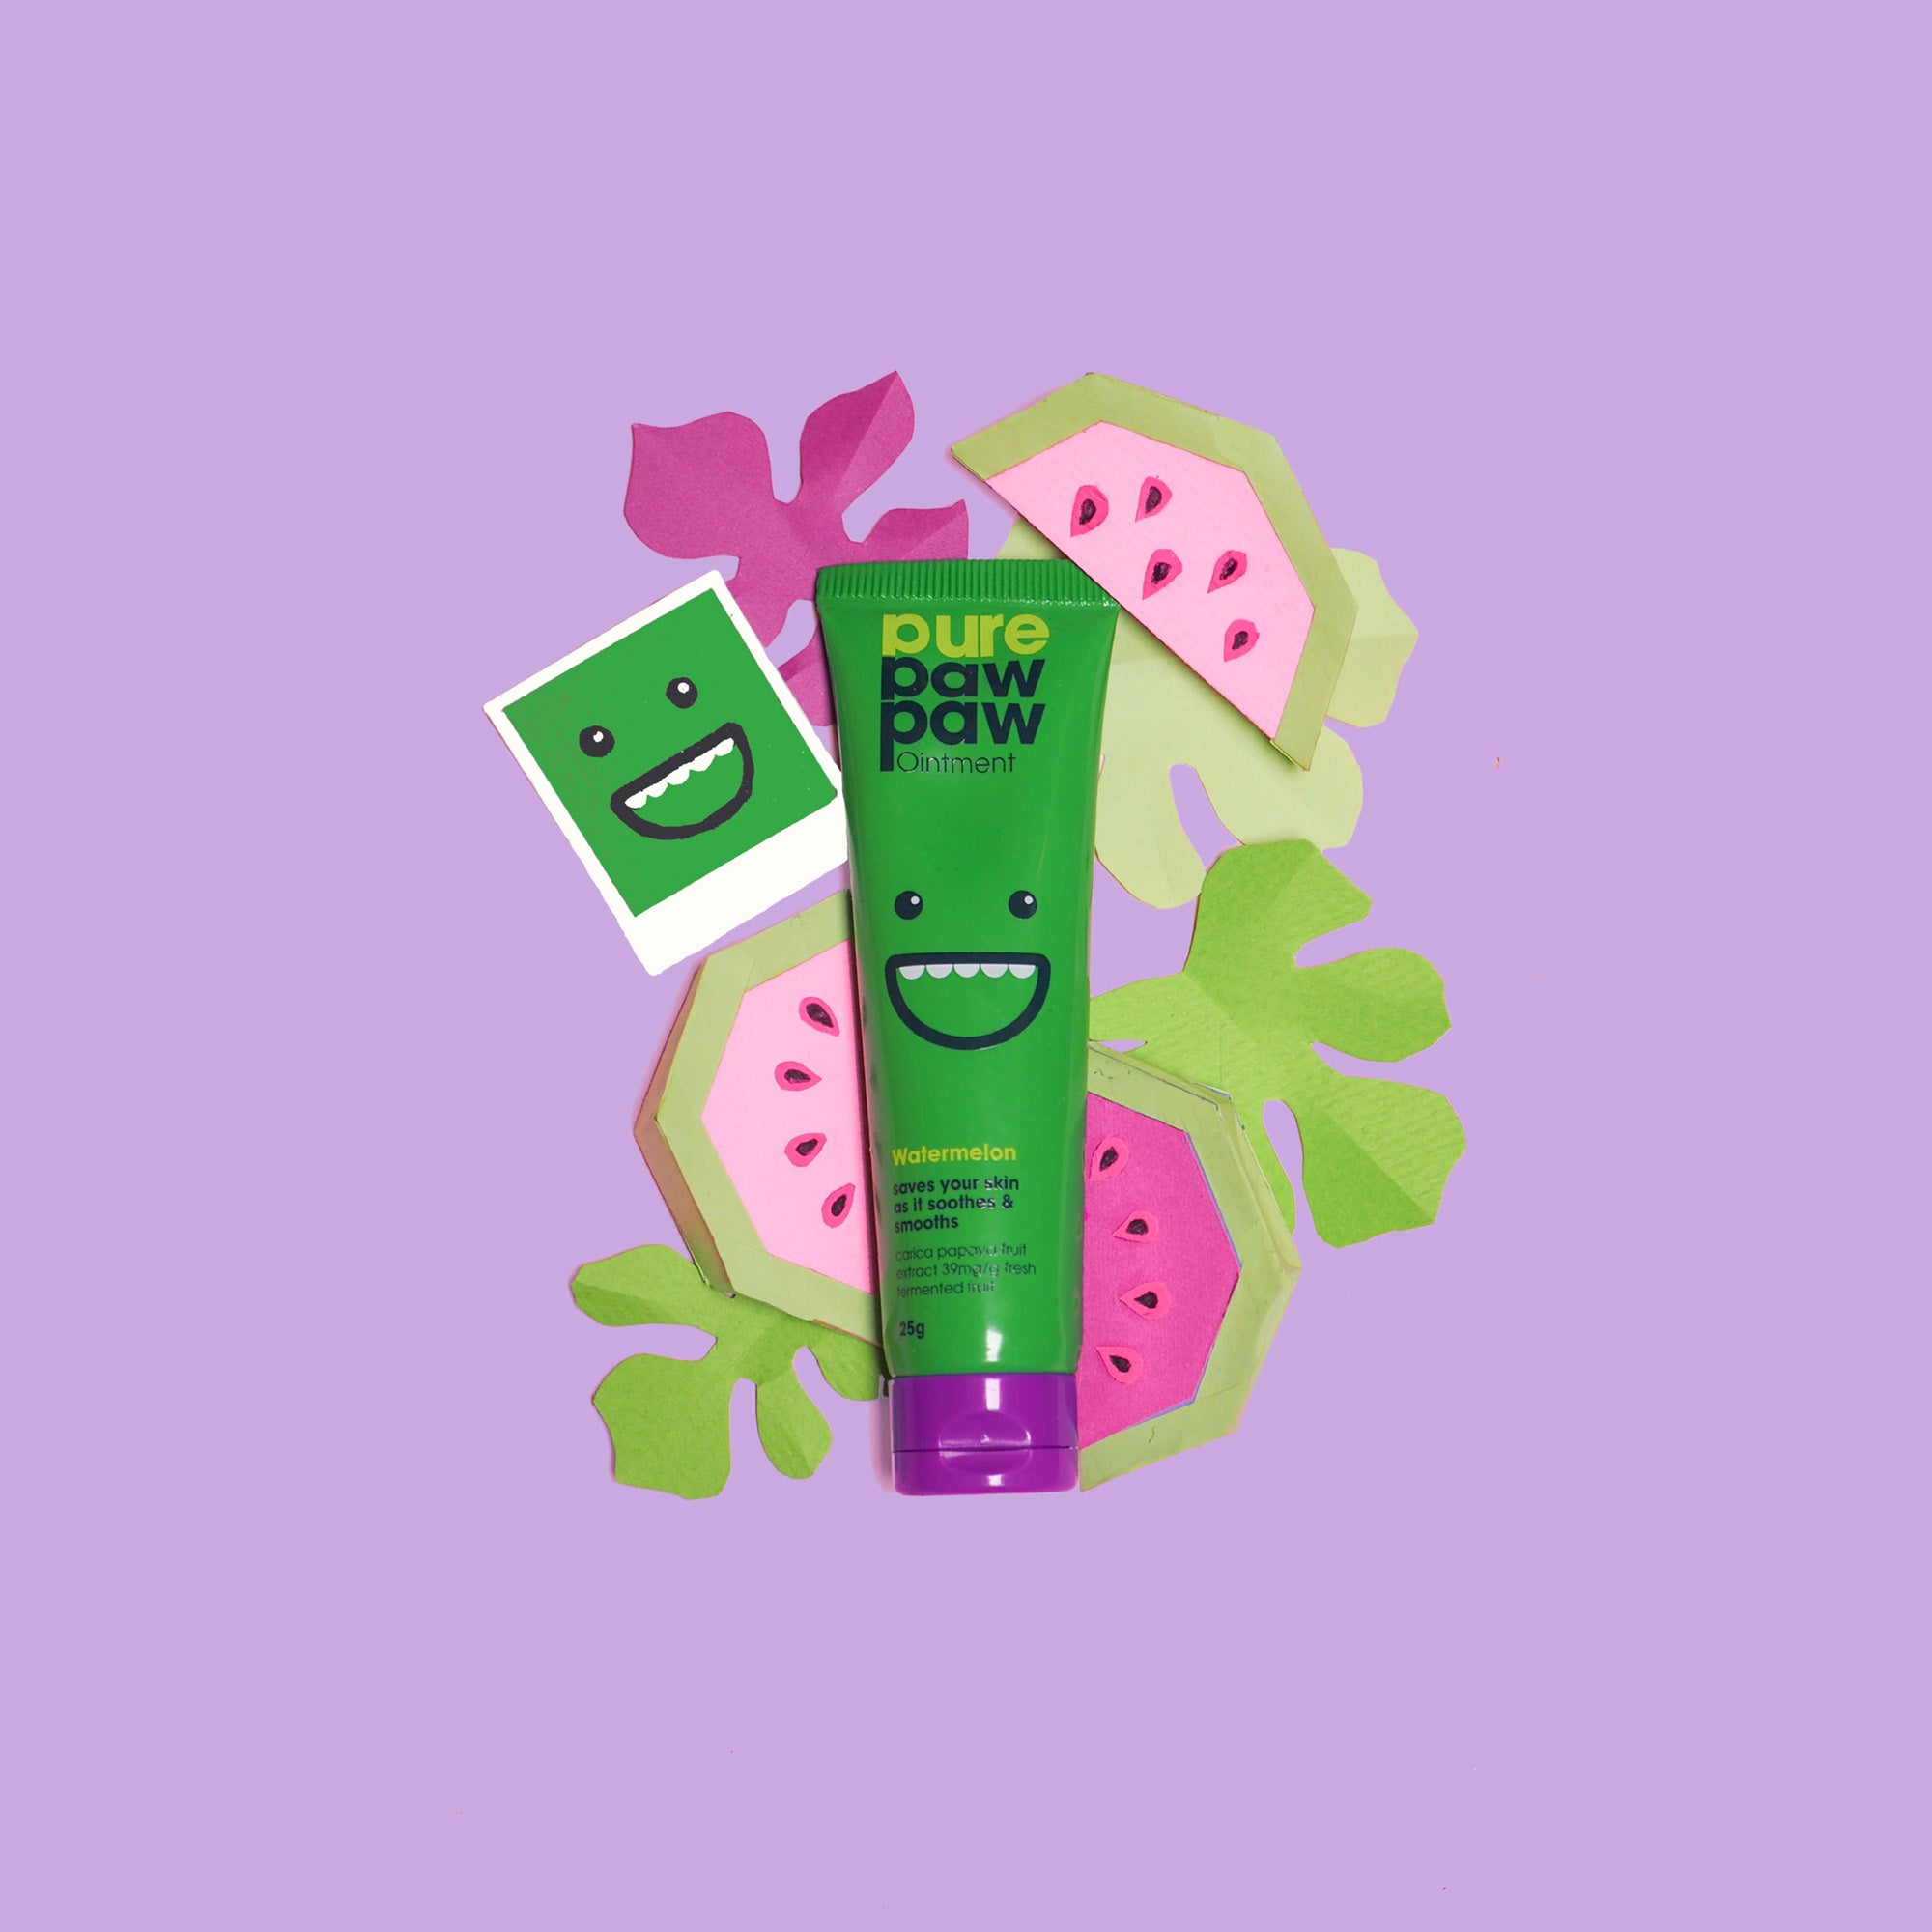 Coming in a colourful green tube with a happy face. Pure Paw Paw watermelon is made with fresh fermented fruit.